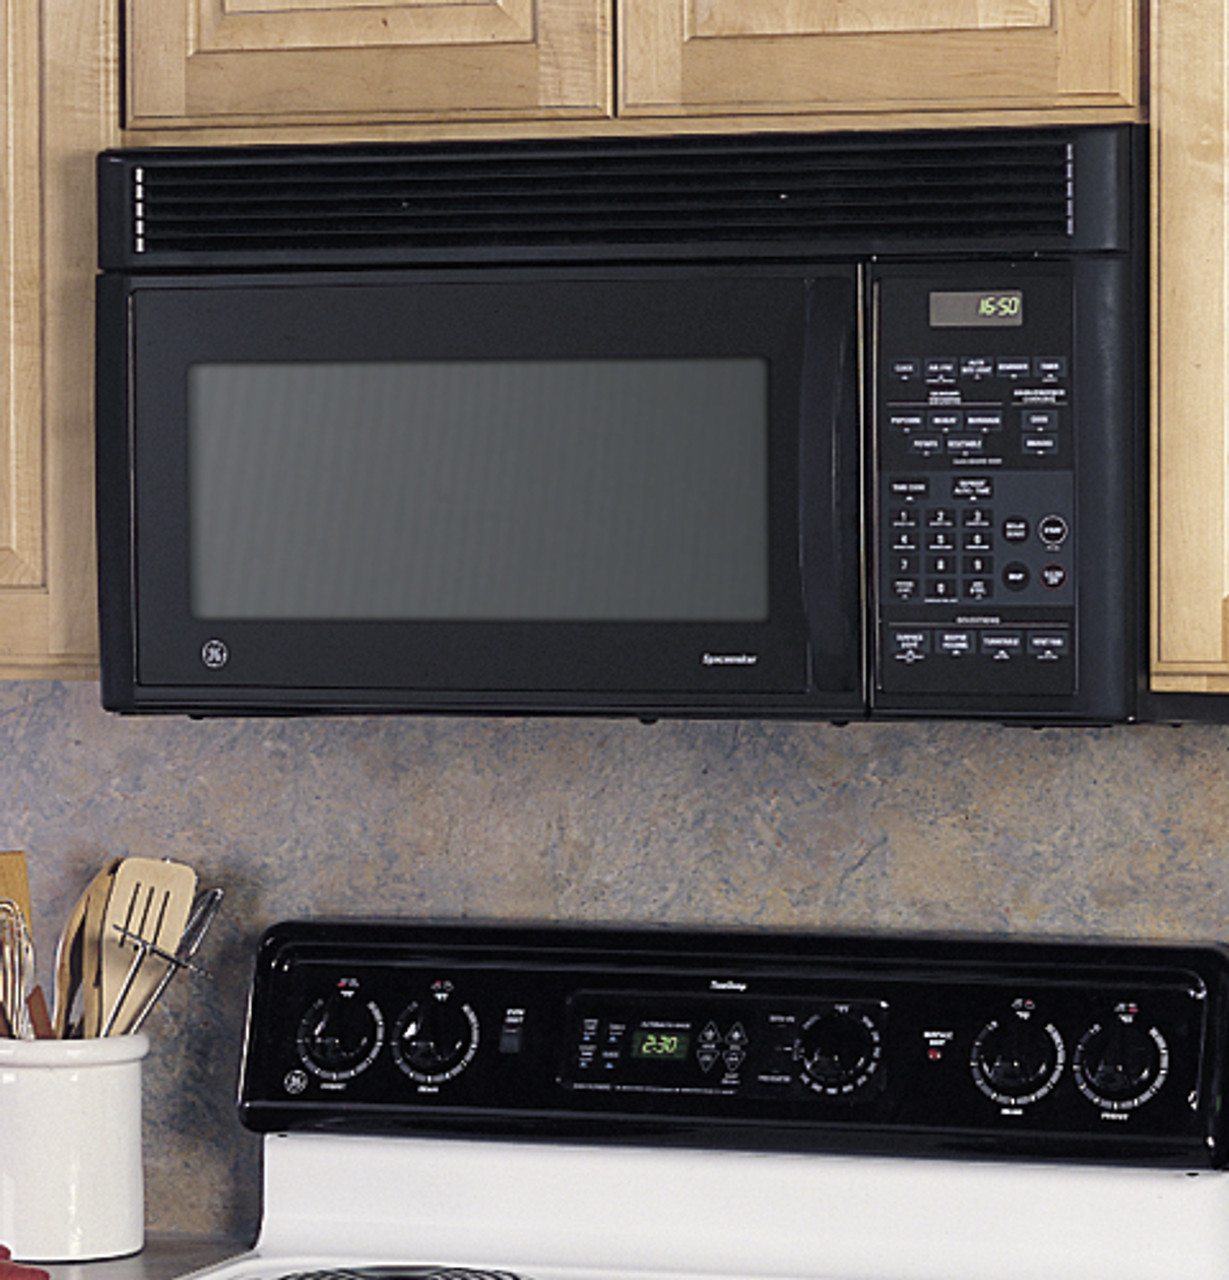 ge spacemaker xl1600 1 6 cu ft capacity 1000 watt microwave oven with outside venting jvm1650bb